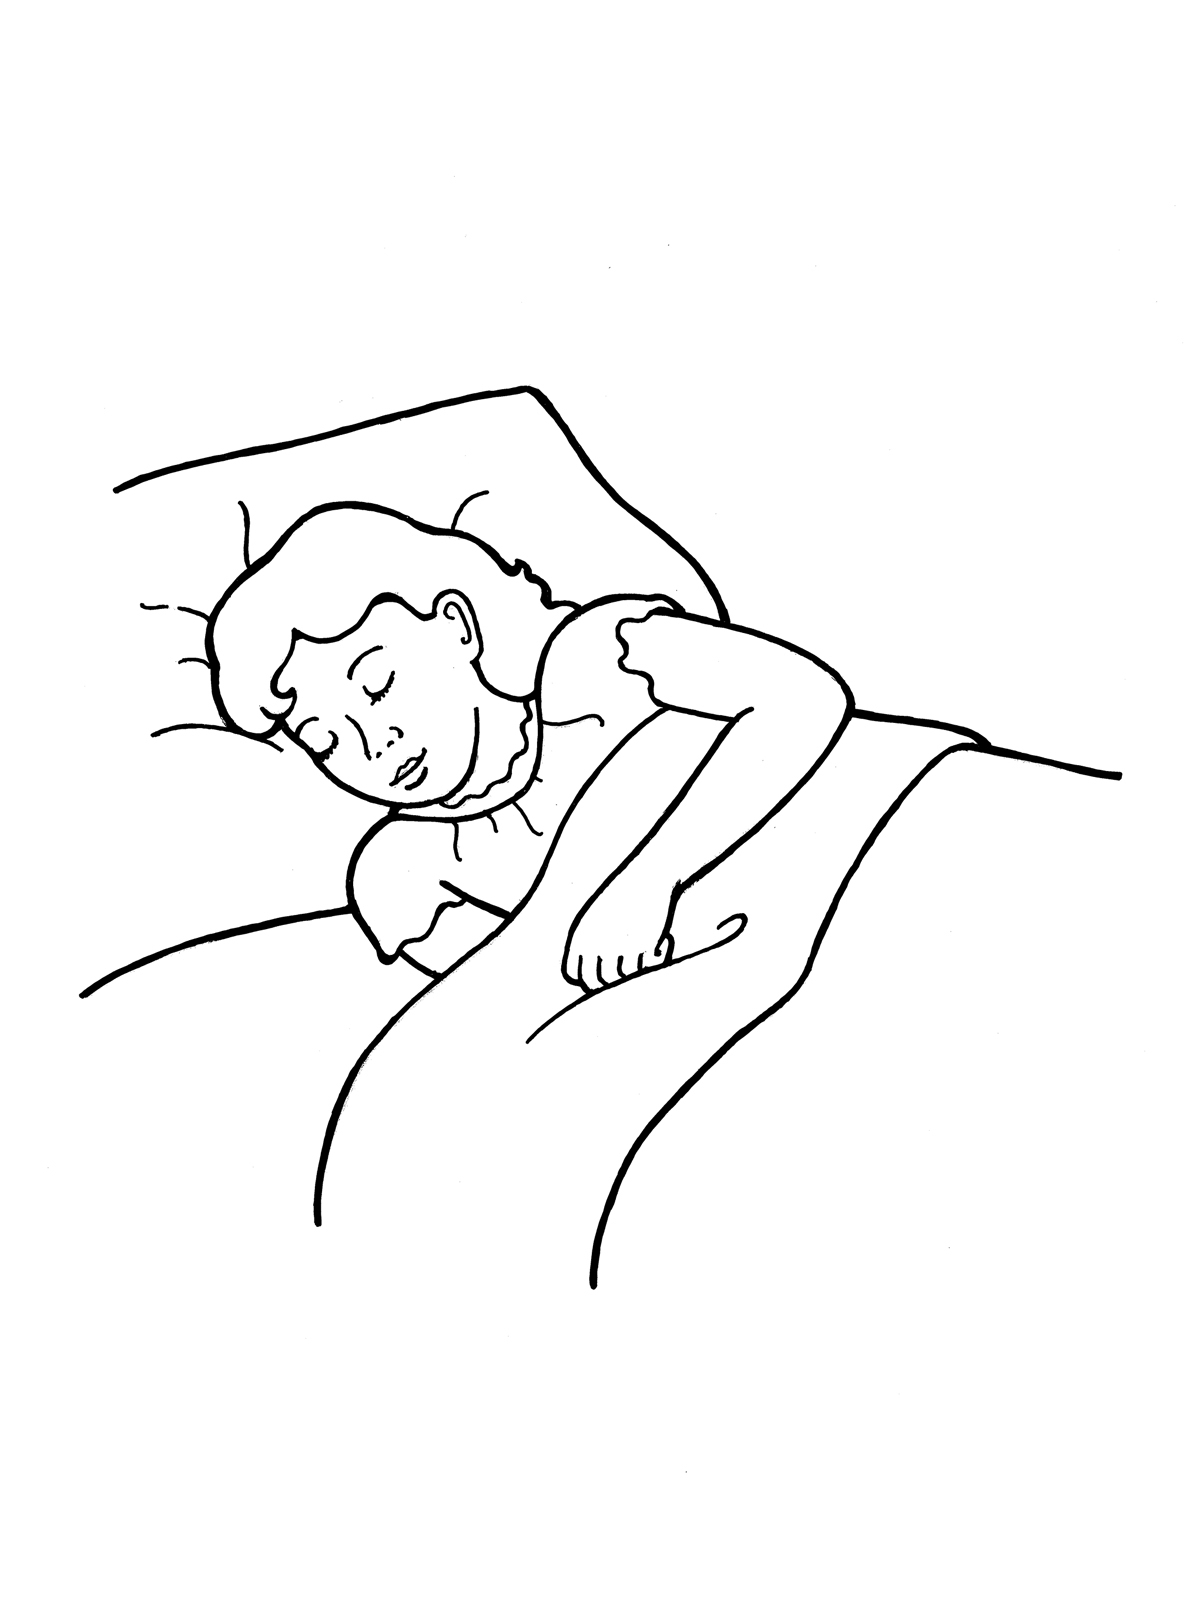 534 Bedtime free clipart.